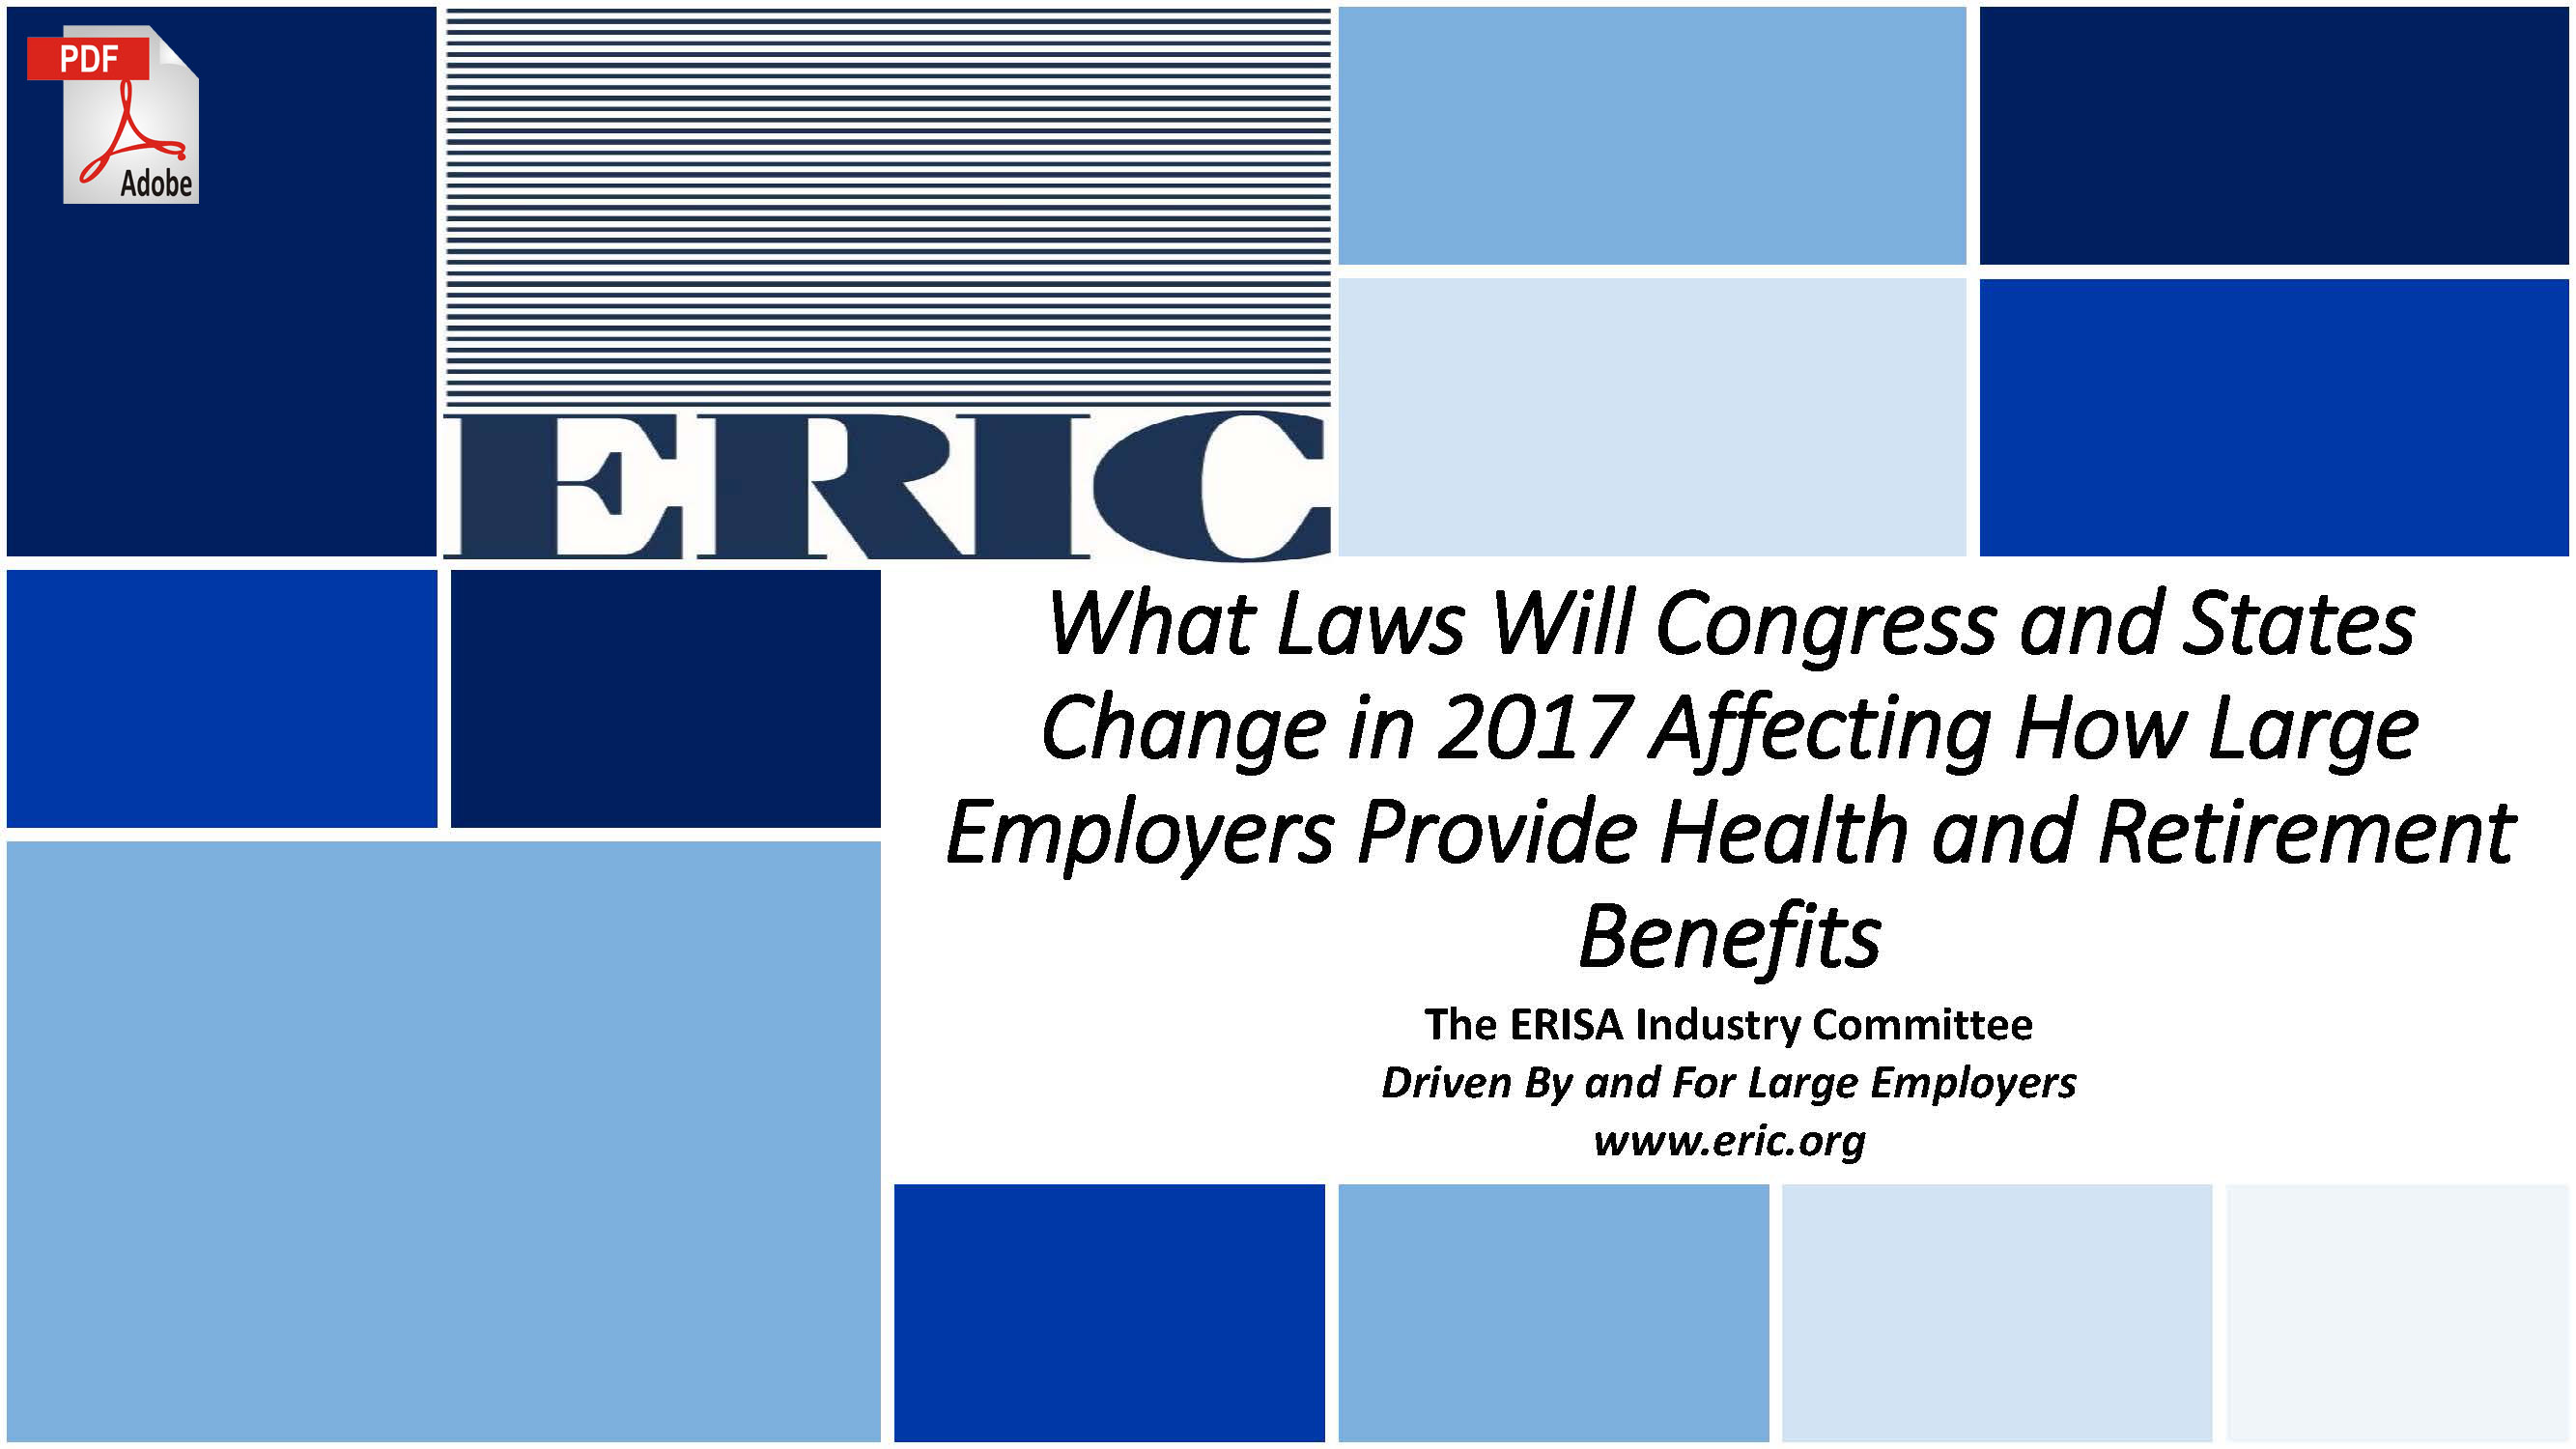 What Laws will Congress change in 2017?